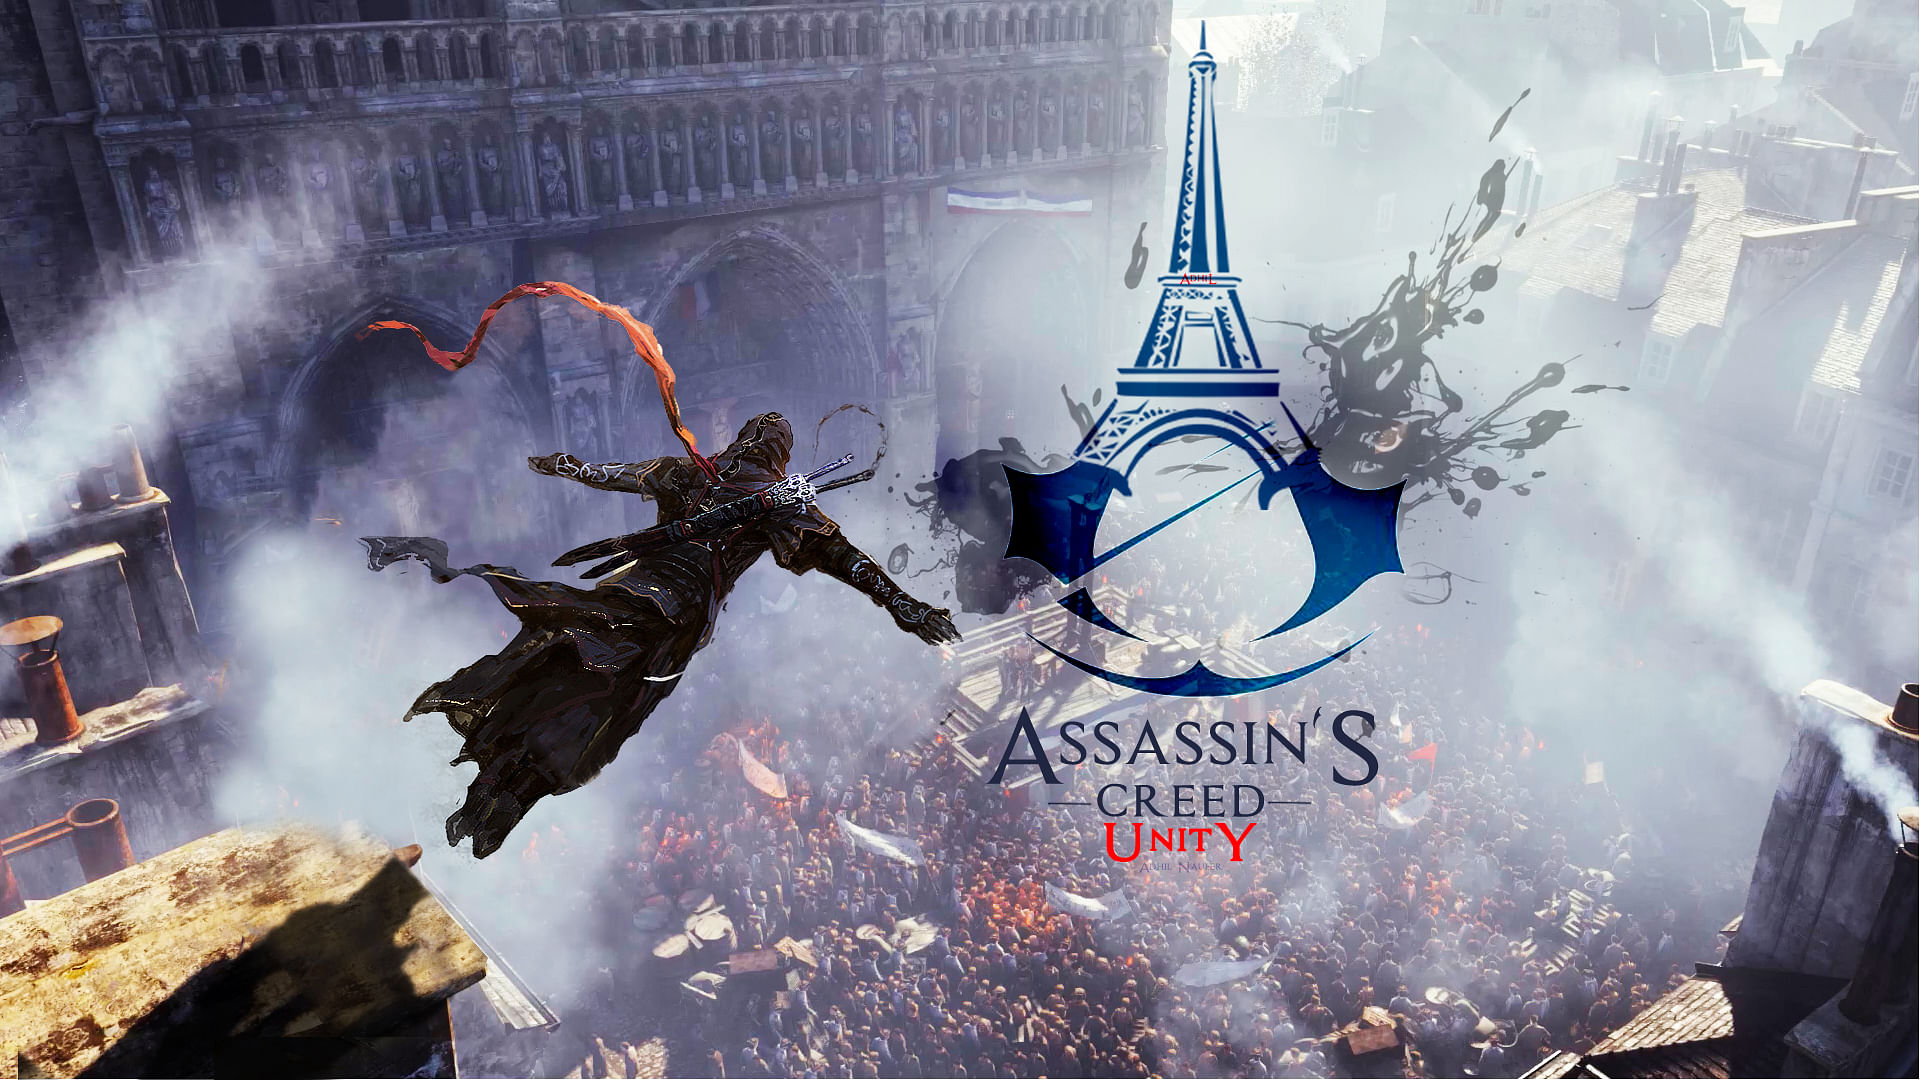 has confirmed that the Assassin's Creed movie has a release date ...